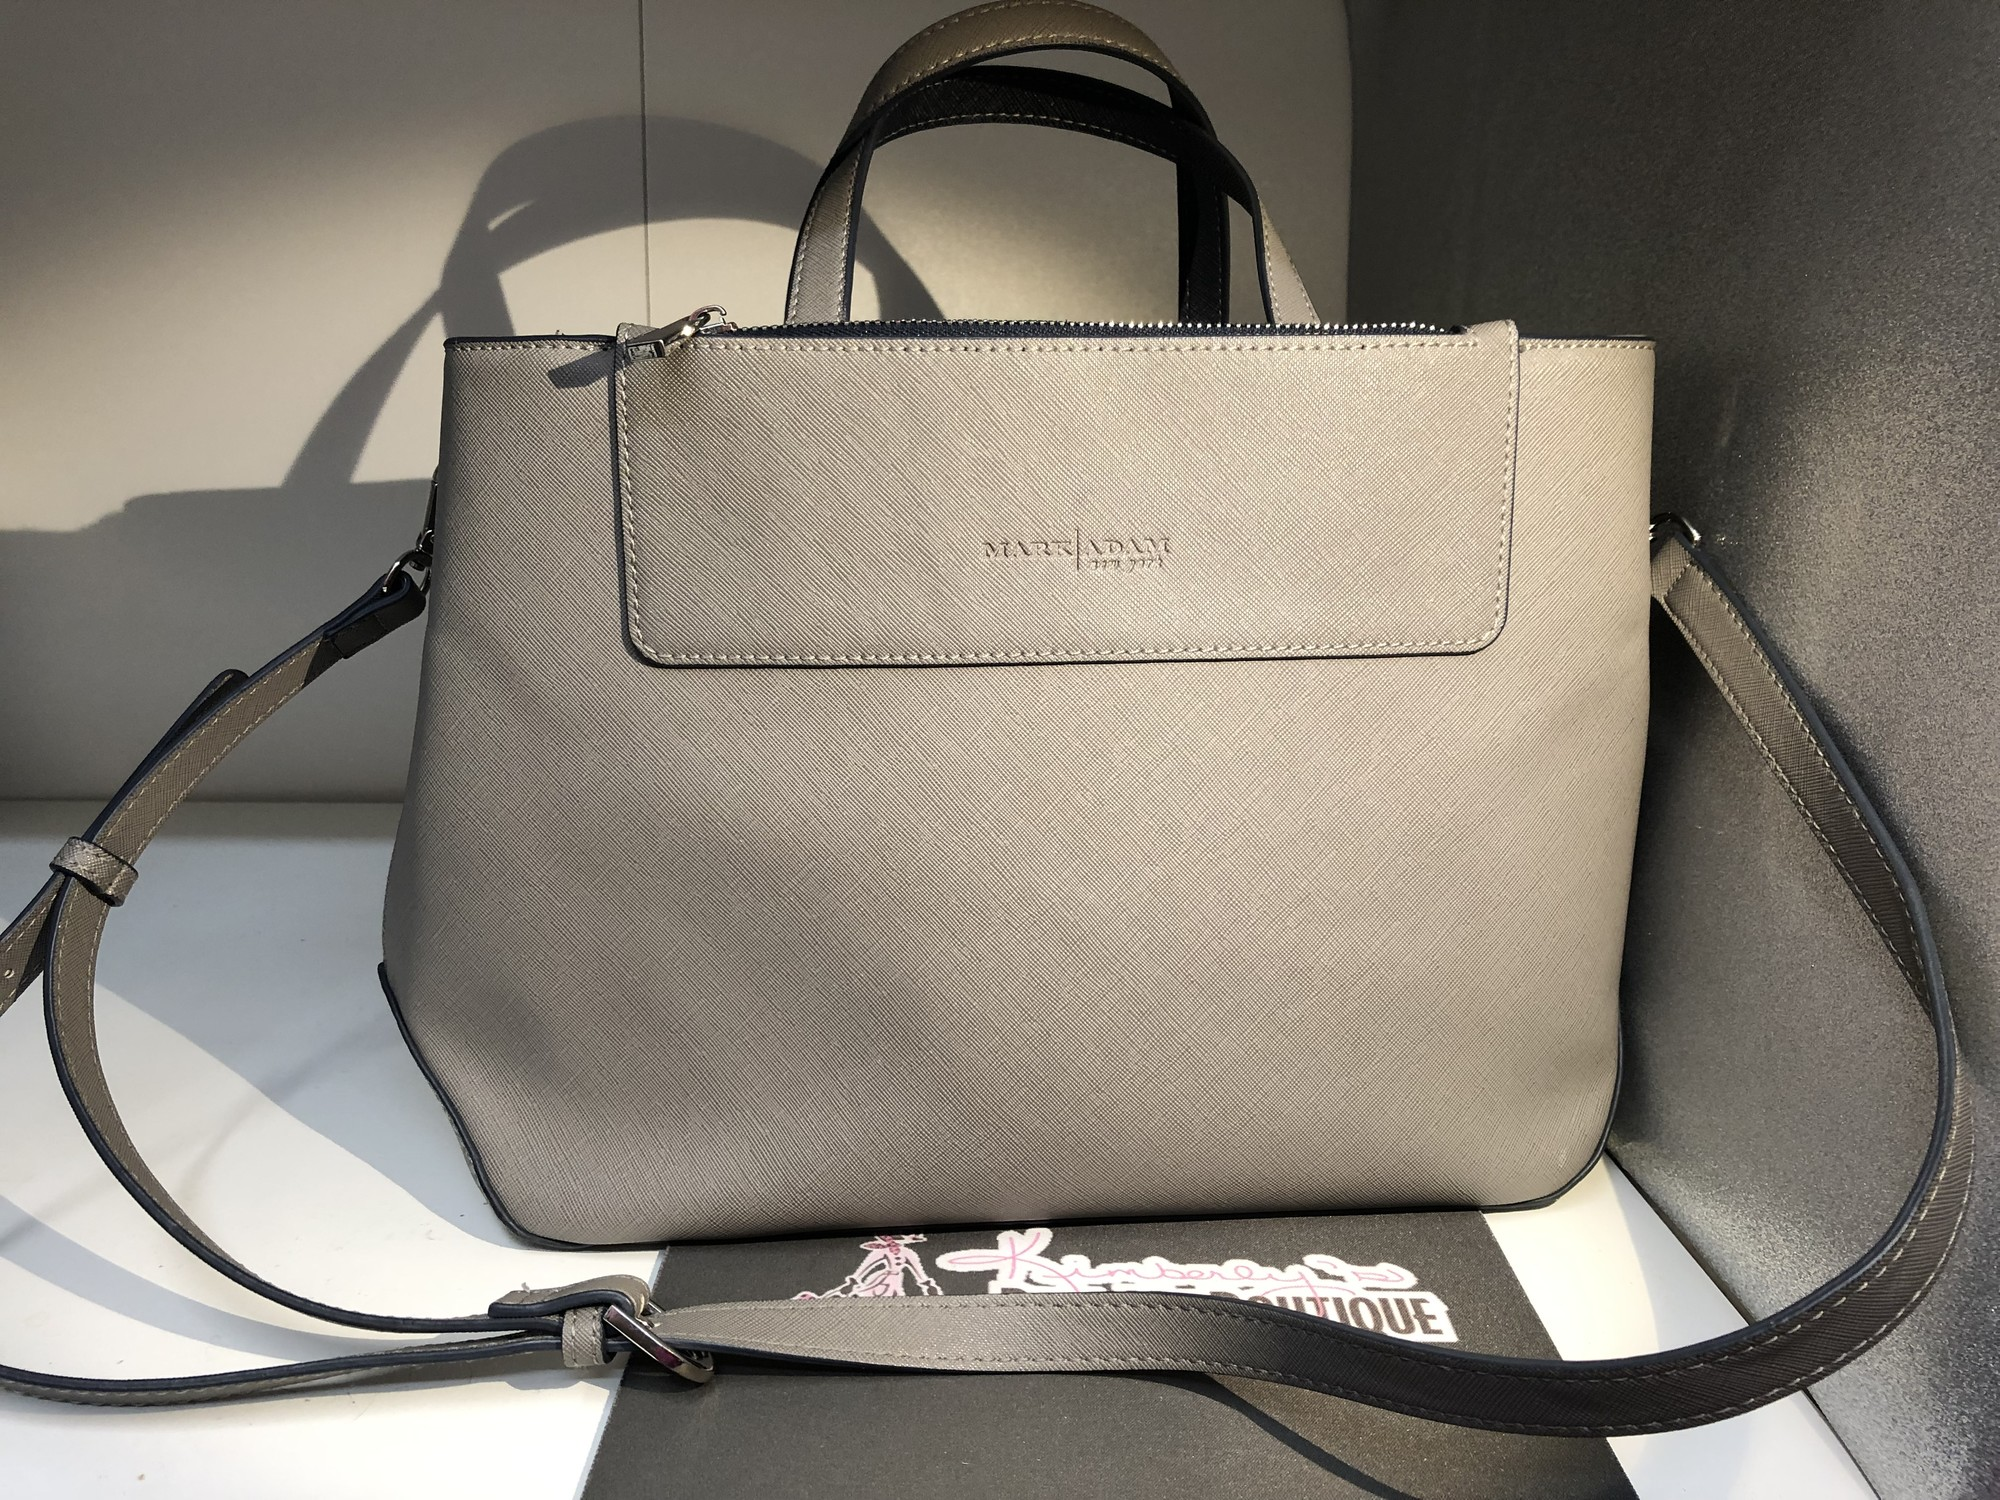 This gorgeous structured, saffiano leather tote retails for $110 in a pretty shade of grey with navy zips in excellent preloved condition. Might be mistaken for New!